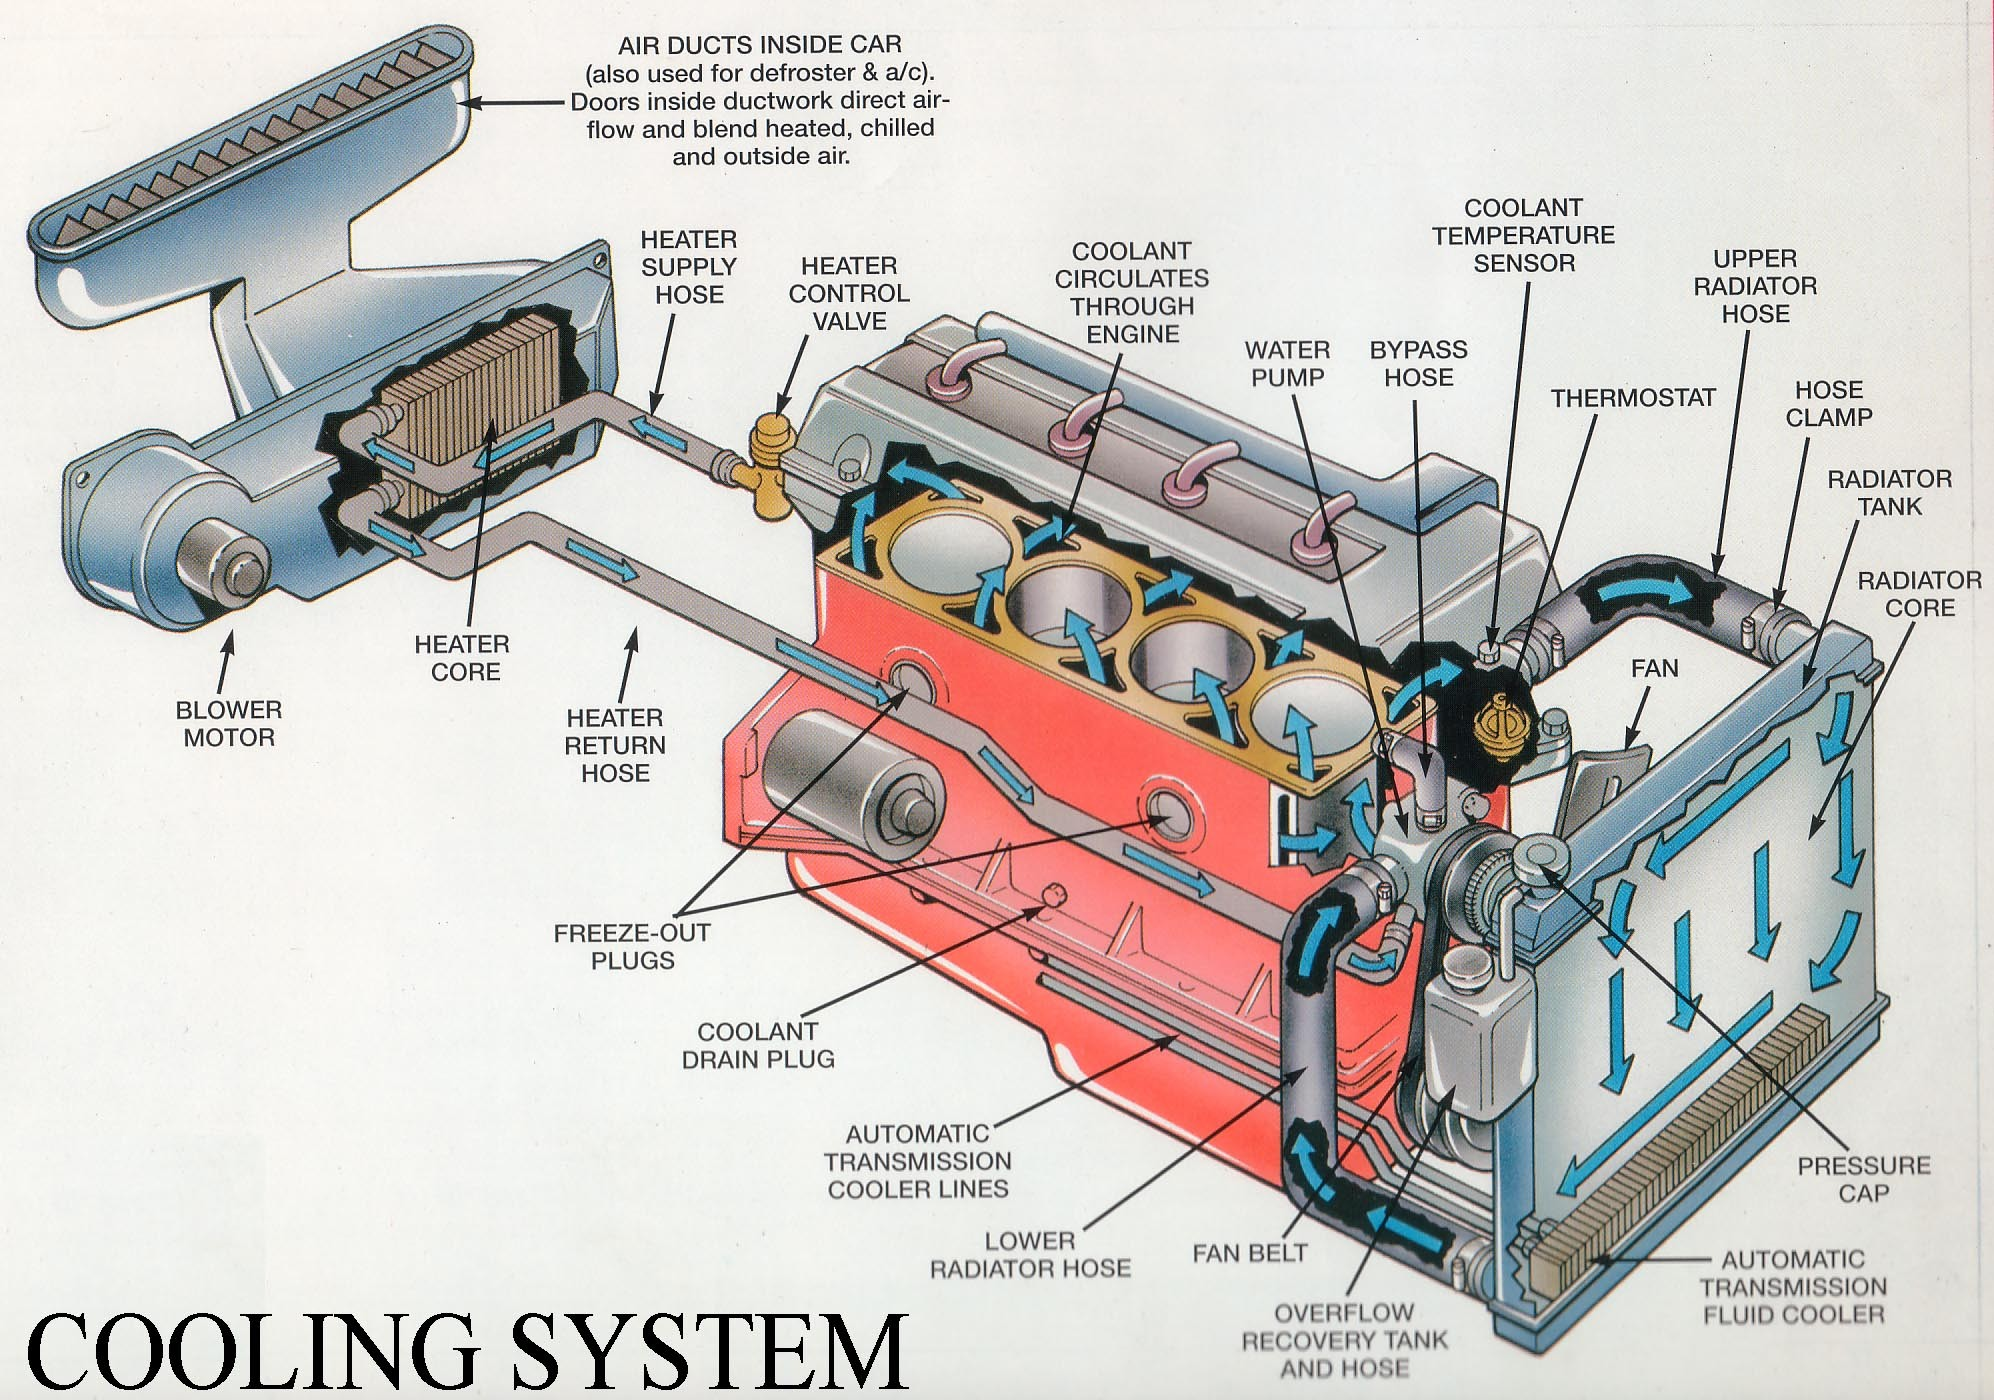 hight resolution of diagram of car cooling system car radiator diagram radiator diagram diagram chart gallery of diagram of